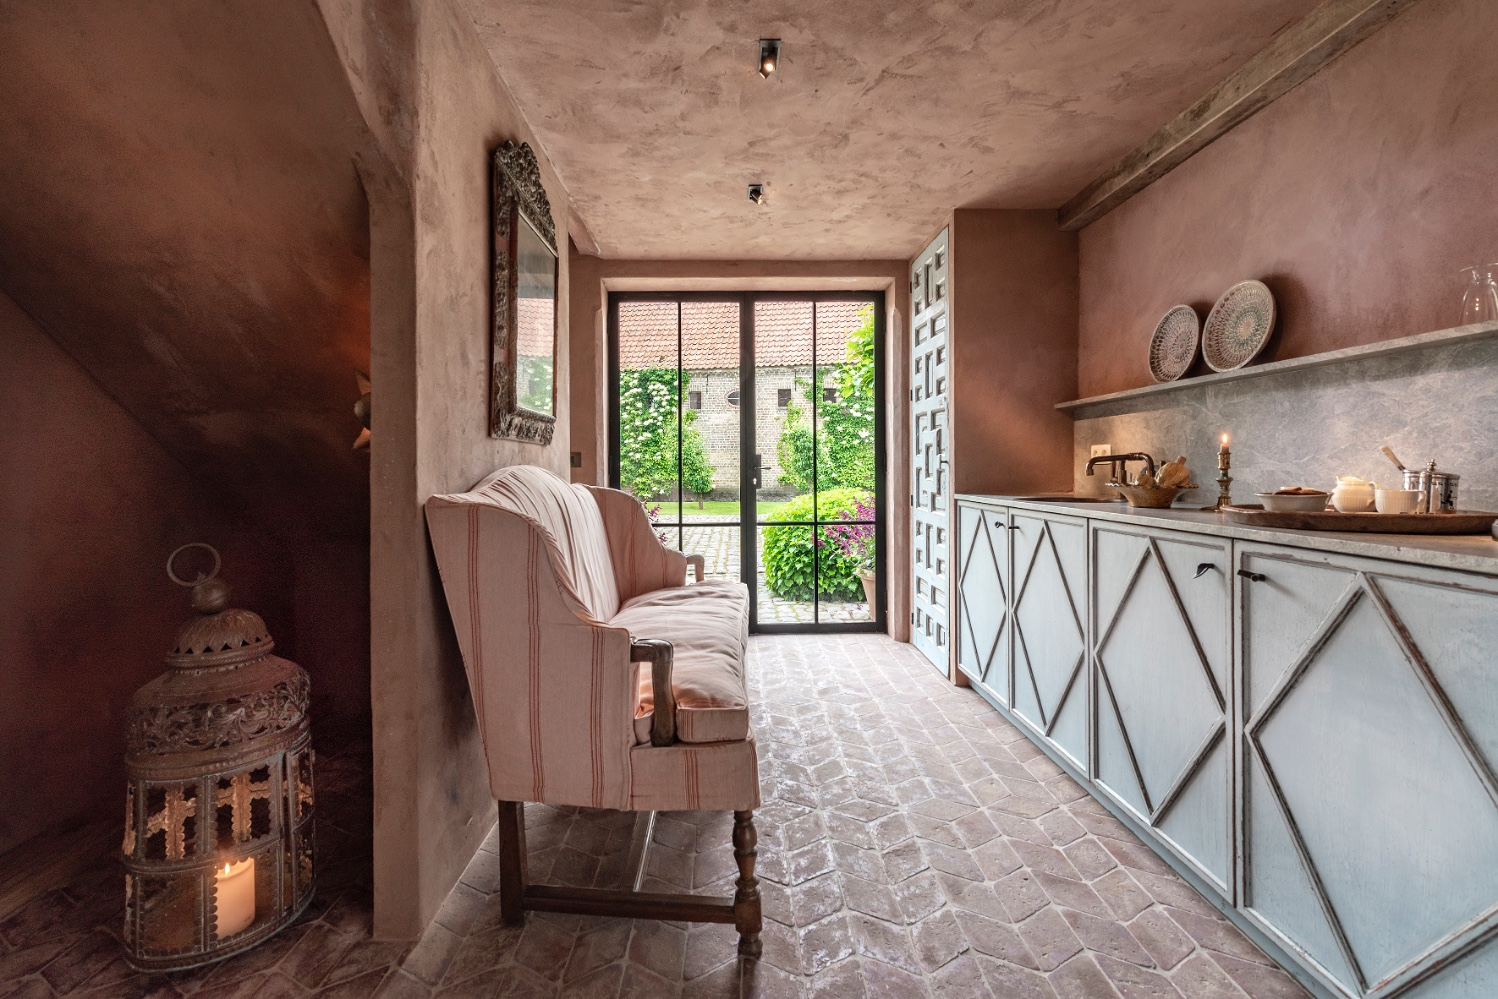 Warm rosy plastered walls and ceiling in a Belgian style interior at The Little Monastery. Come enjoy photos of Old World Style and Rustic European Antiques in a Serene Countryside Setting.